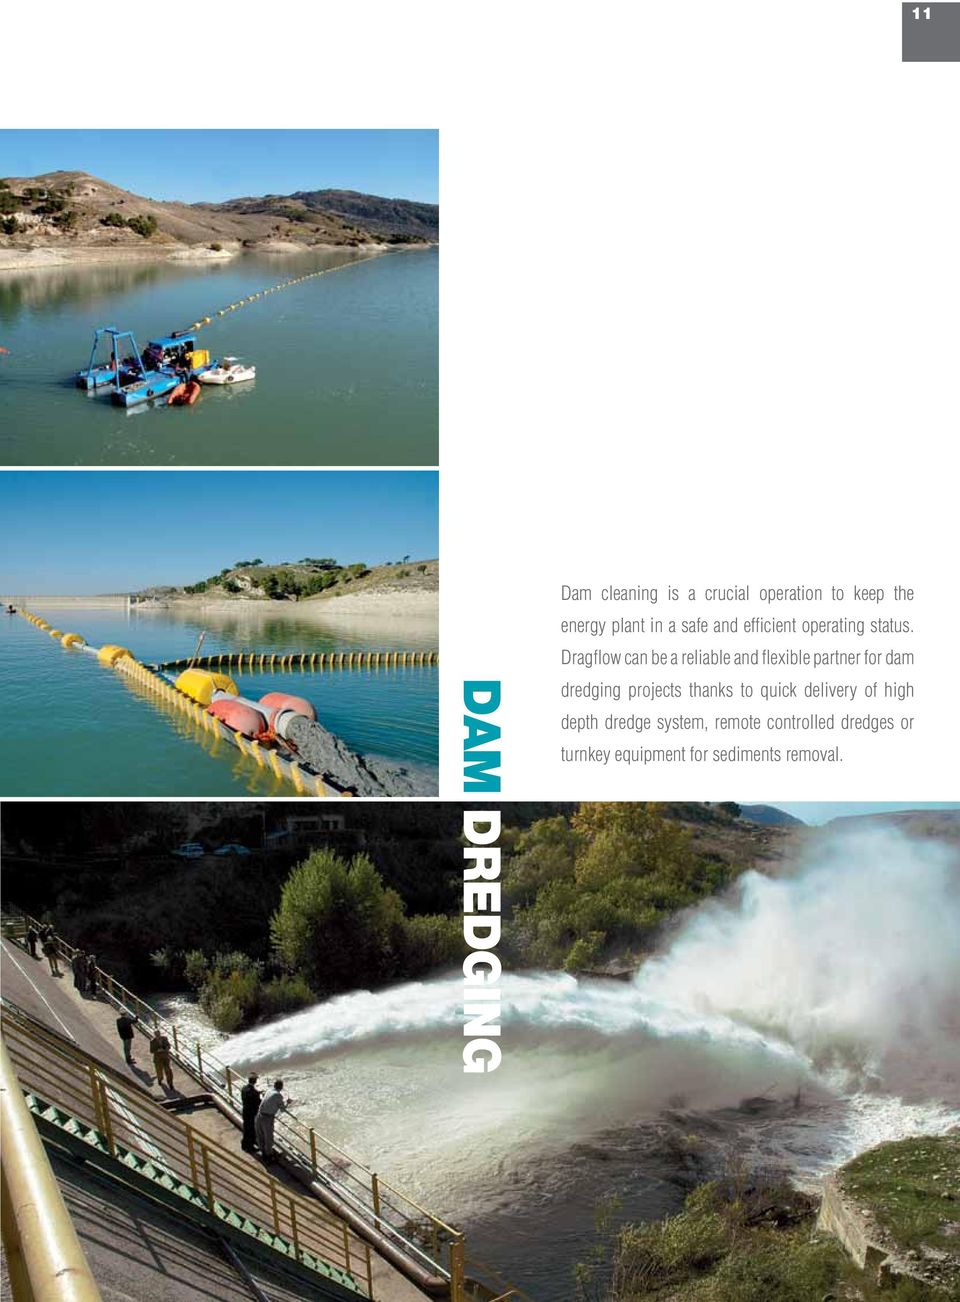 Dragflow can be a reliable and flexible partner for dam dredging projects